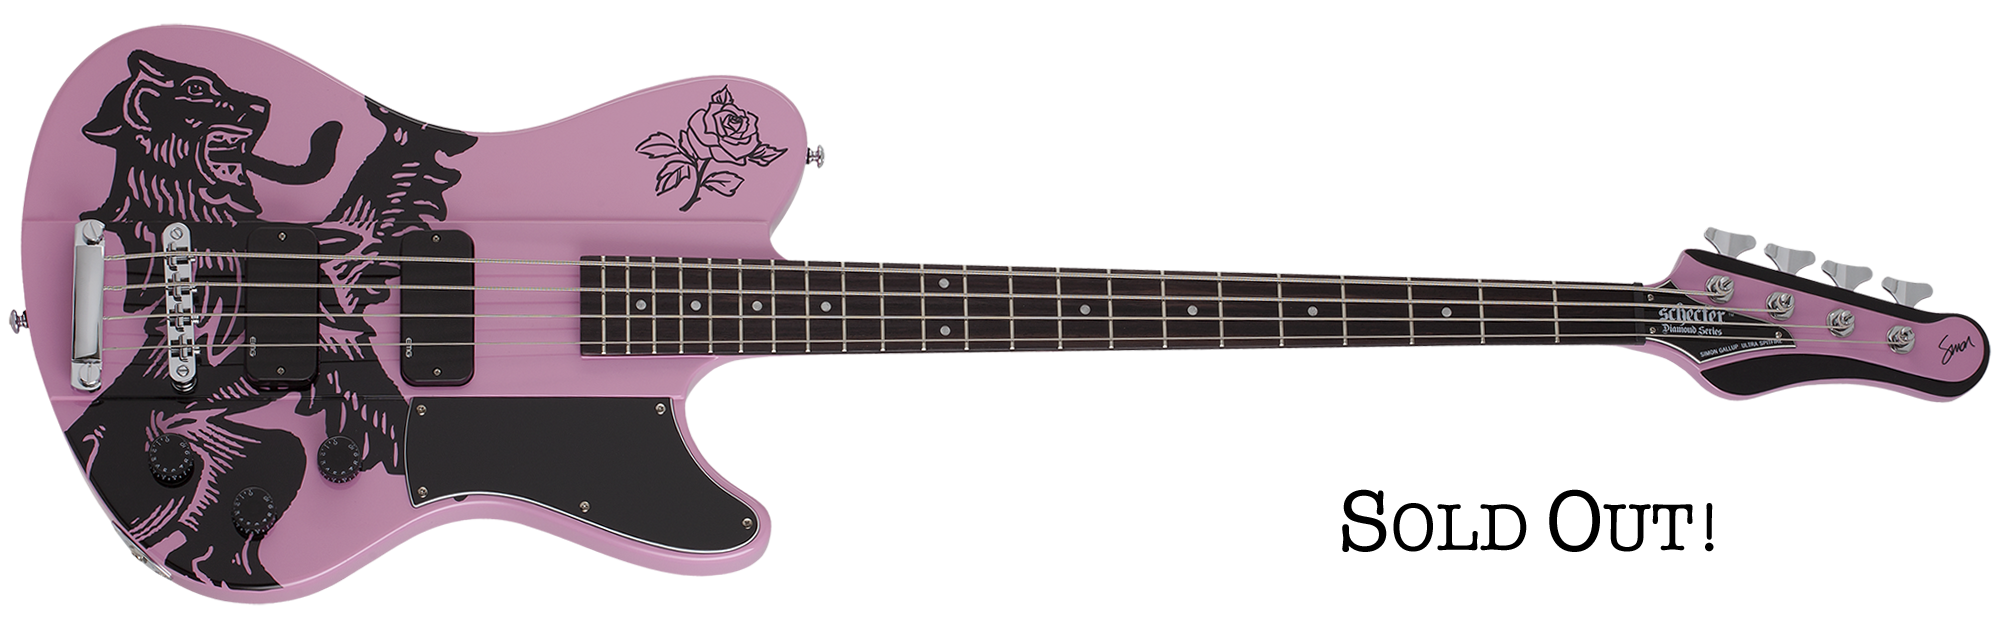 Simon Gallup Ultra Spitfire Bass Punk Rock Pink SKU #2243